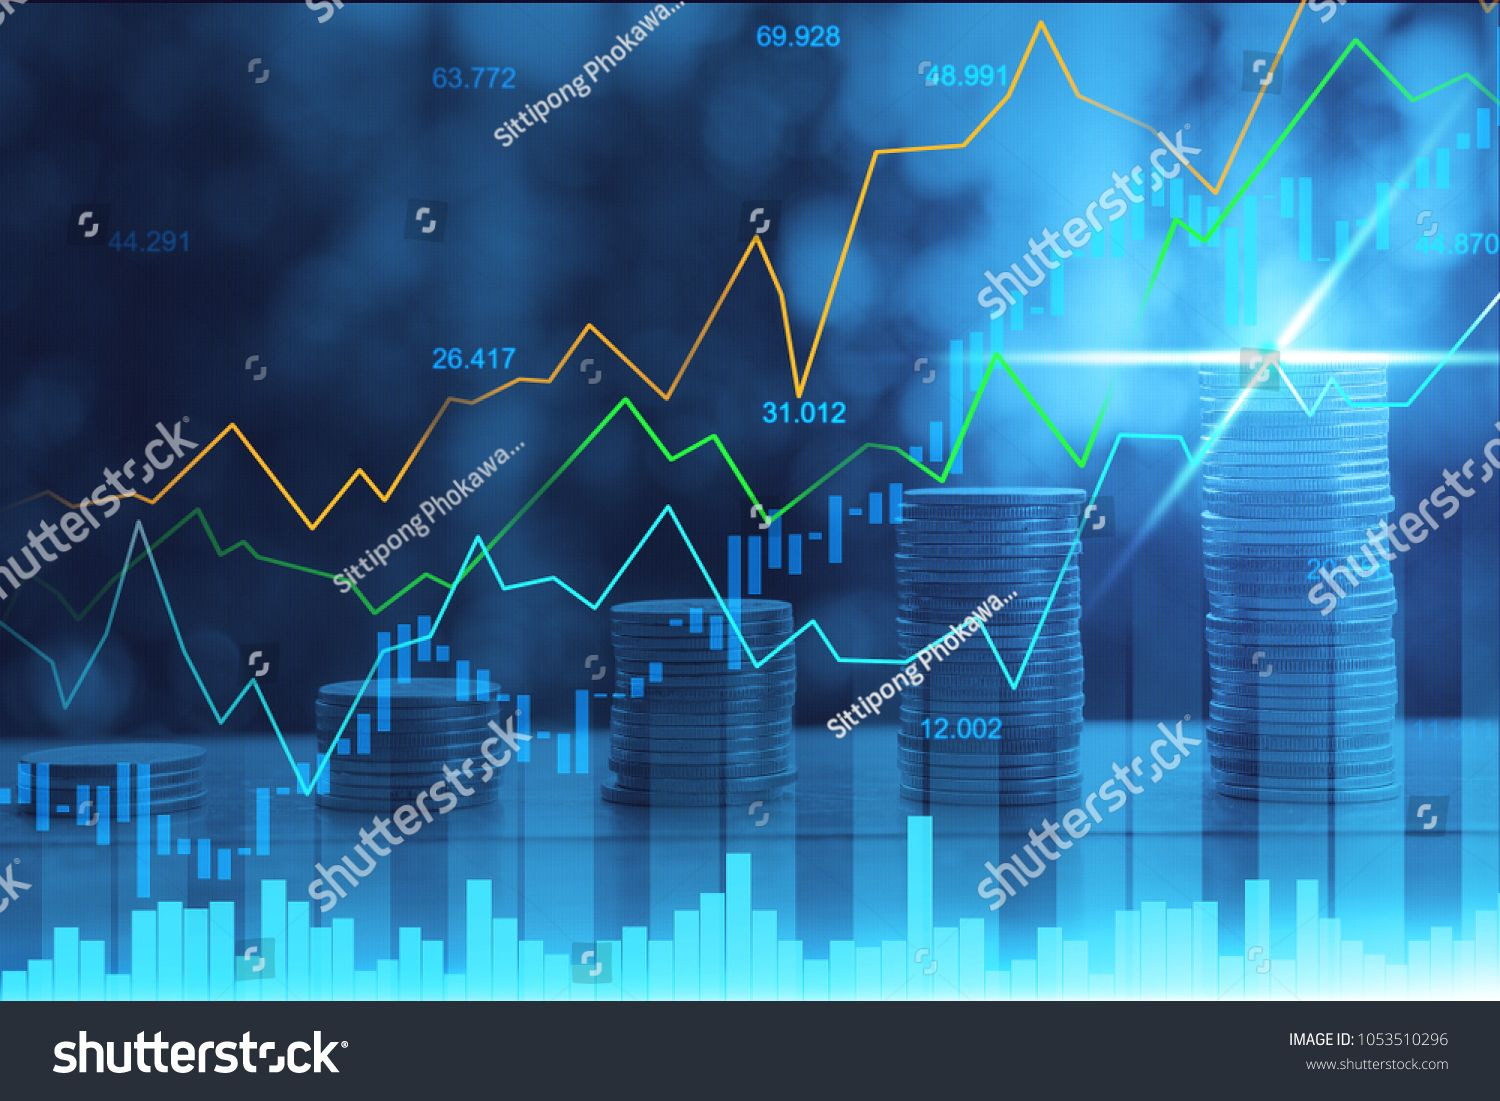 Stock Market Or Forex Trading Graph In Graphic Double Exposure Concept Suitable For Financial Investment Or Econom In 2020 Stock Market Economic Trends Double Exposure